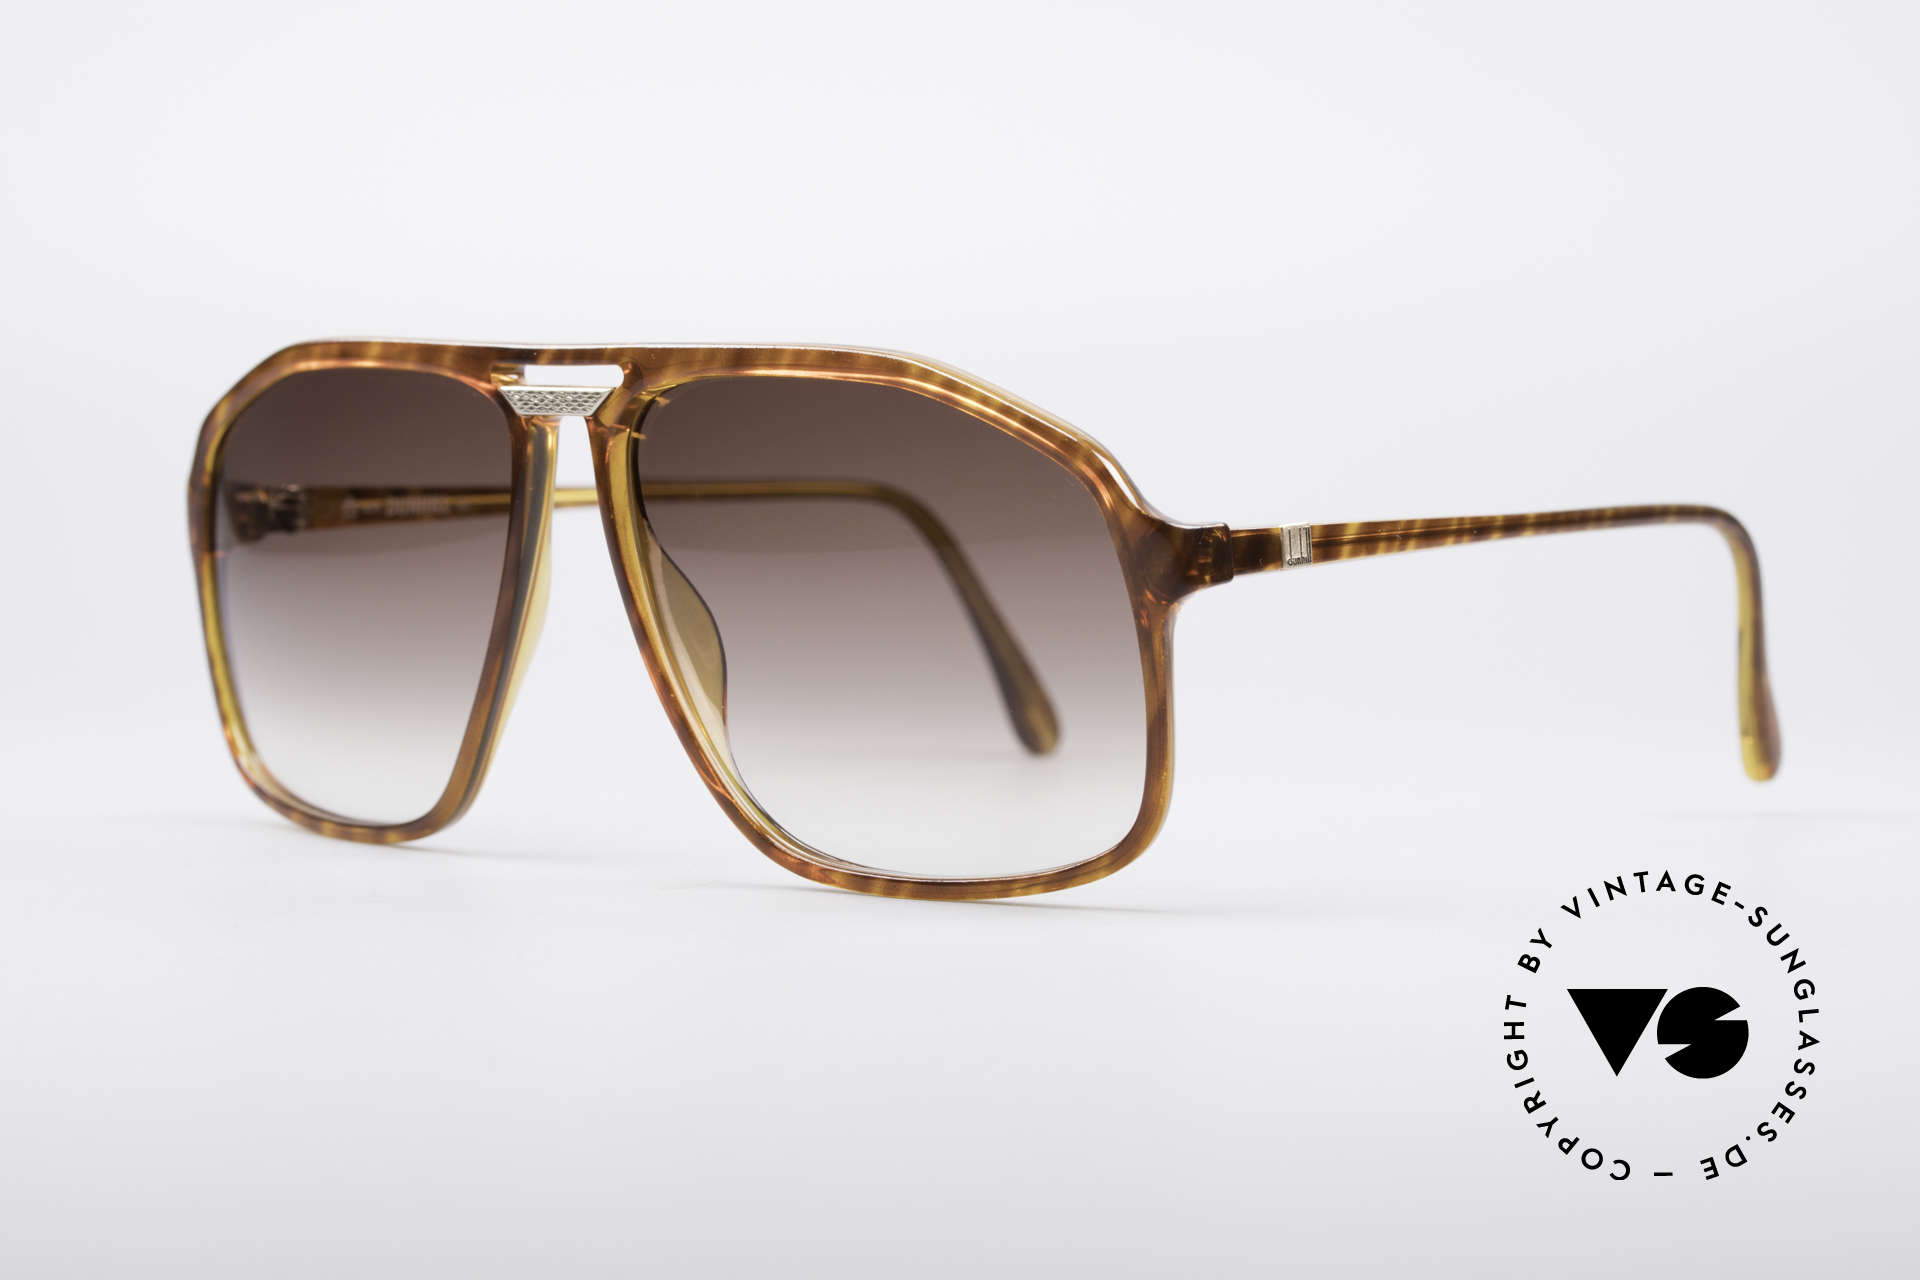 Dunhill 6097 Luxury Men's Sunglasses M, gent's luxury sunglasses; pure lifestyle and pure quality, Made for Men